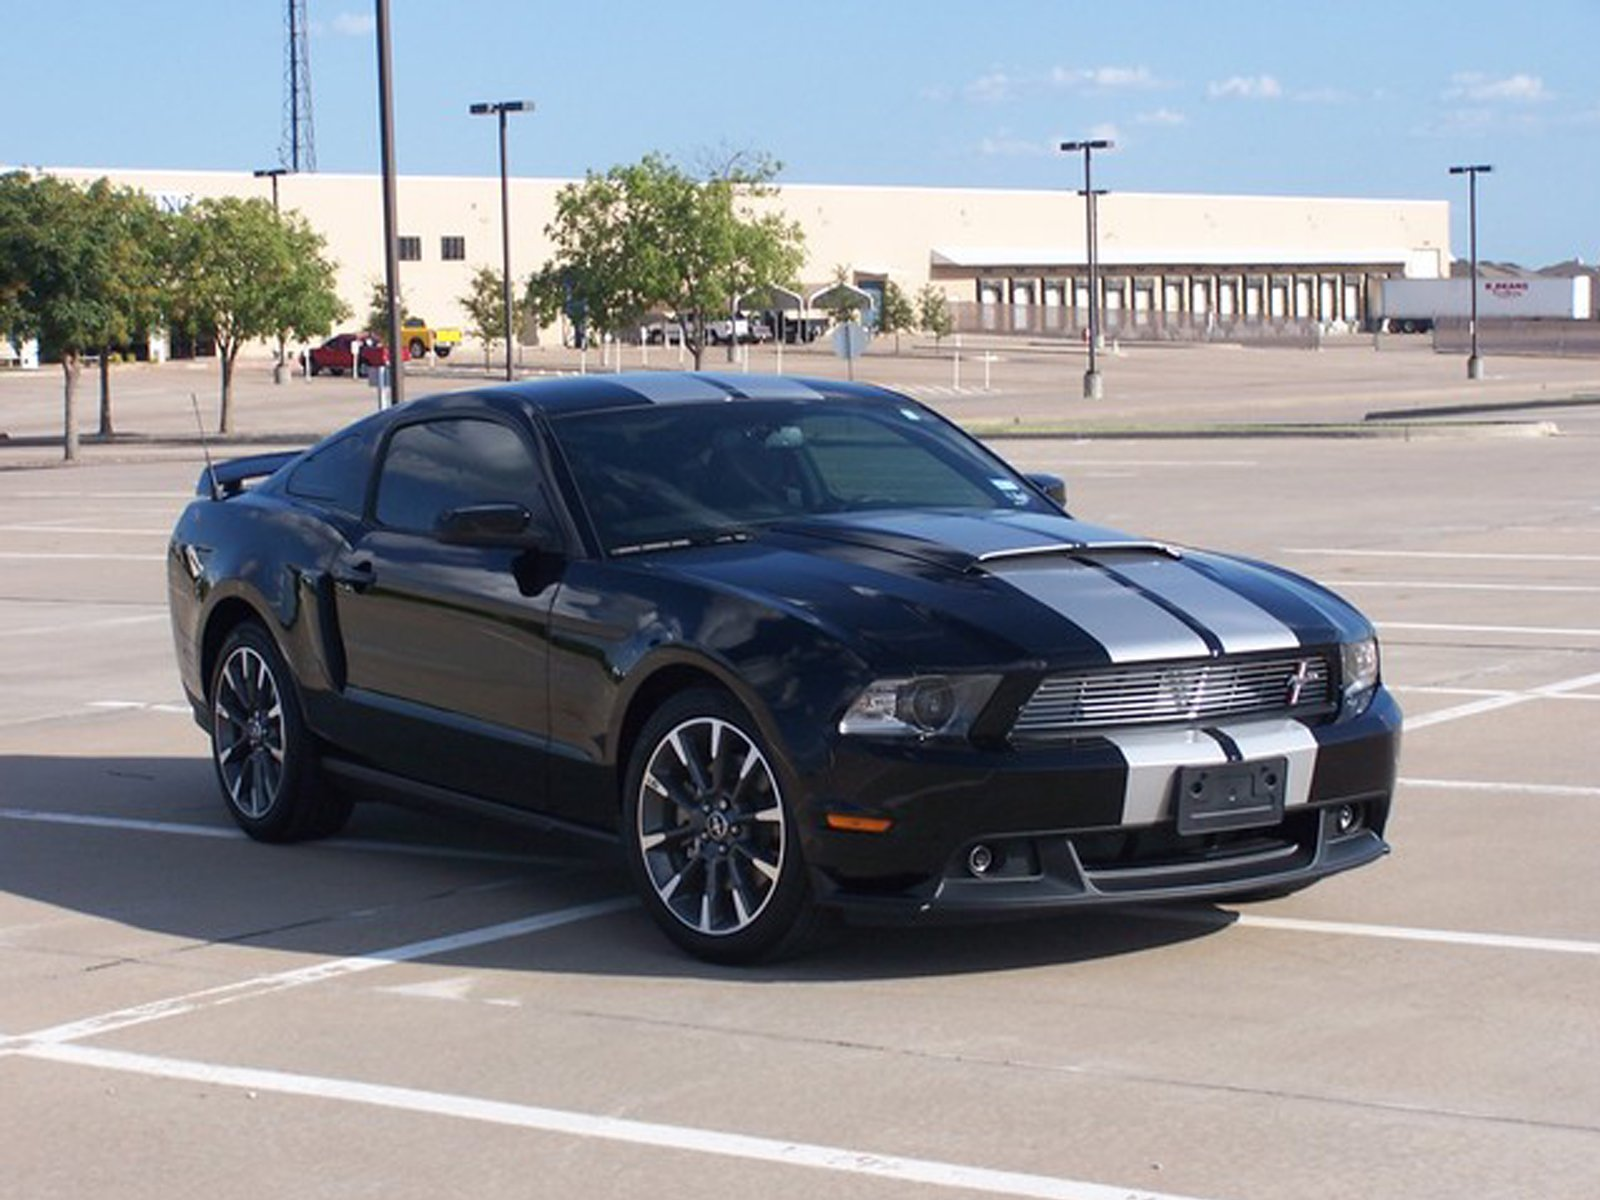 2010 Mustang Gt Chin Spoiler Best Car Release And Reviews 2019 2020 2014 Carbon Fiber Fuse Box Cover Question On Racing Stripes 3m Clear Film